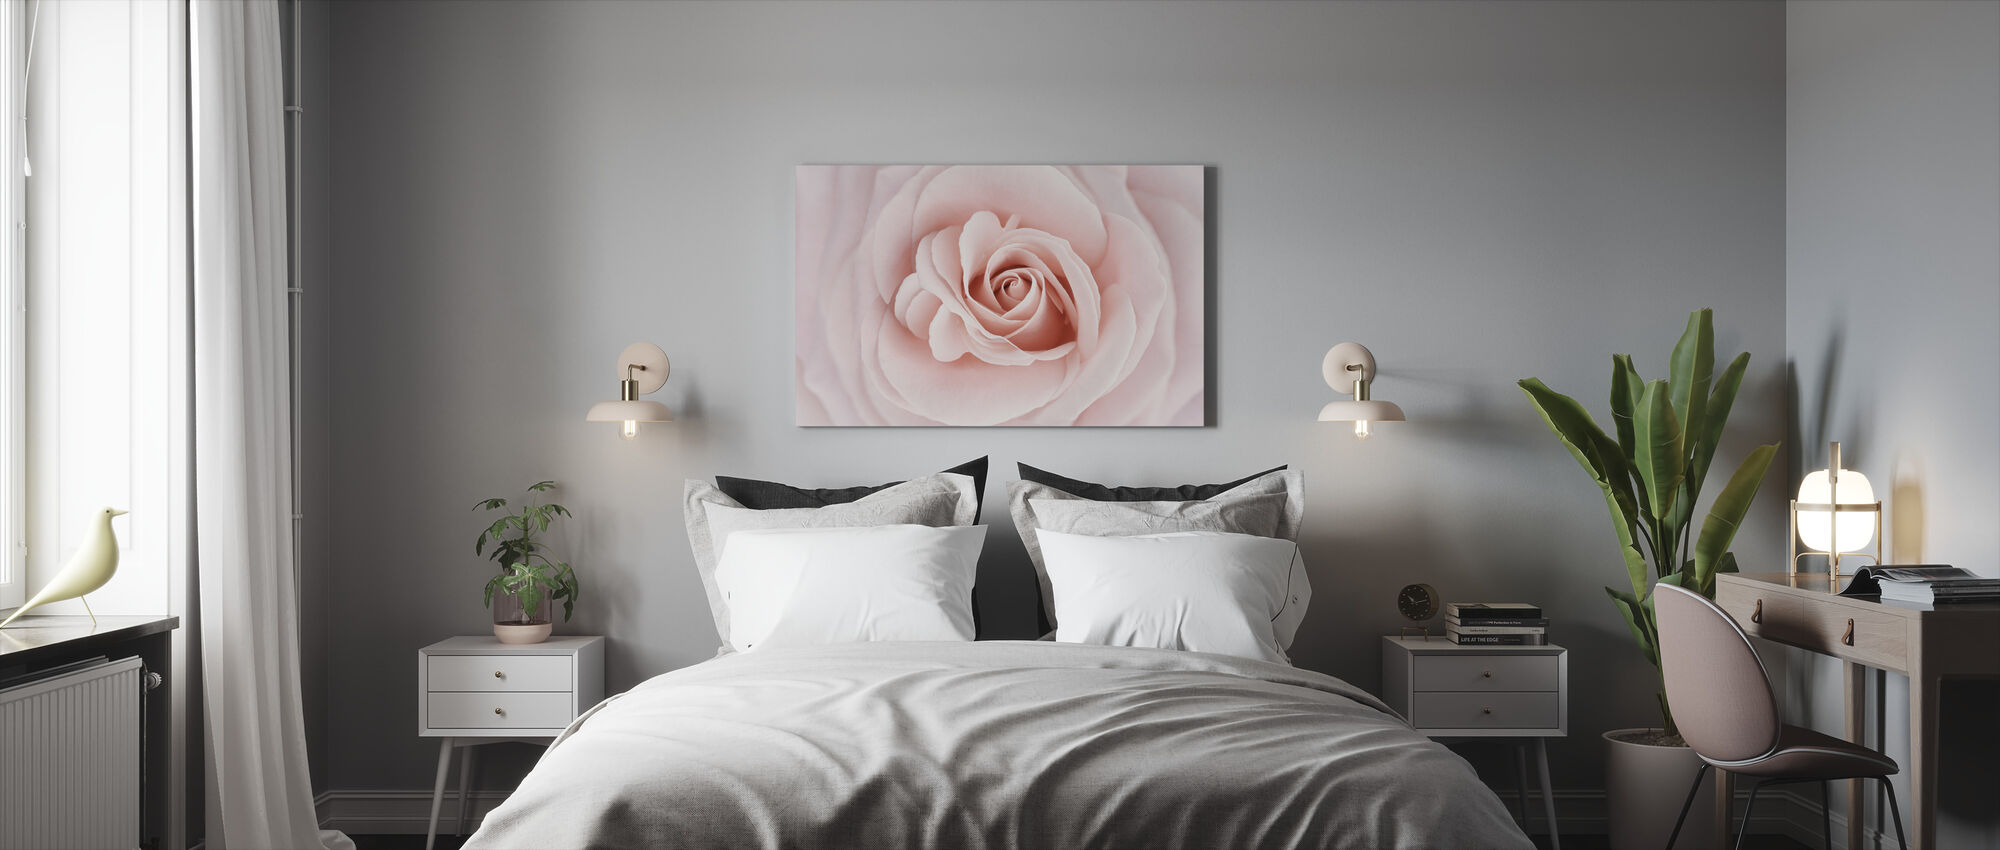 Soft Rose in Peach Pink Shades - Canvas print - Bedroom